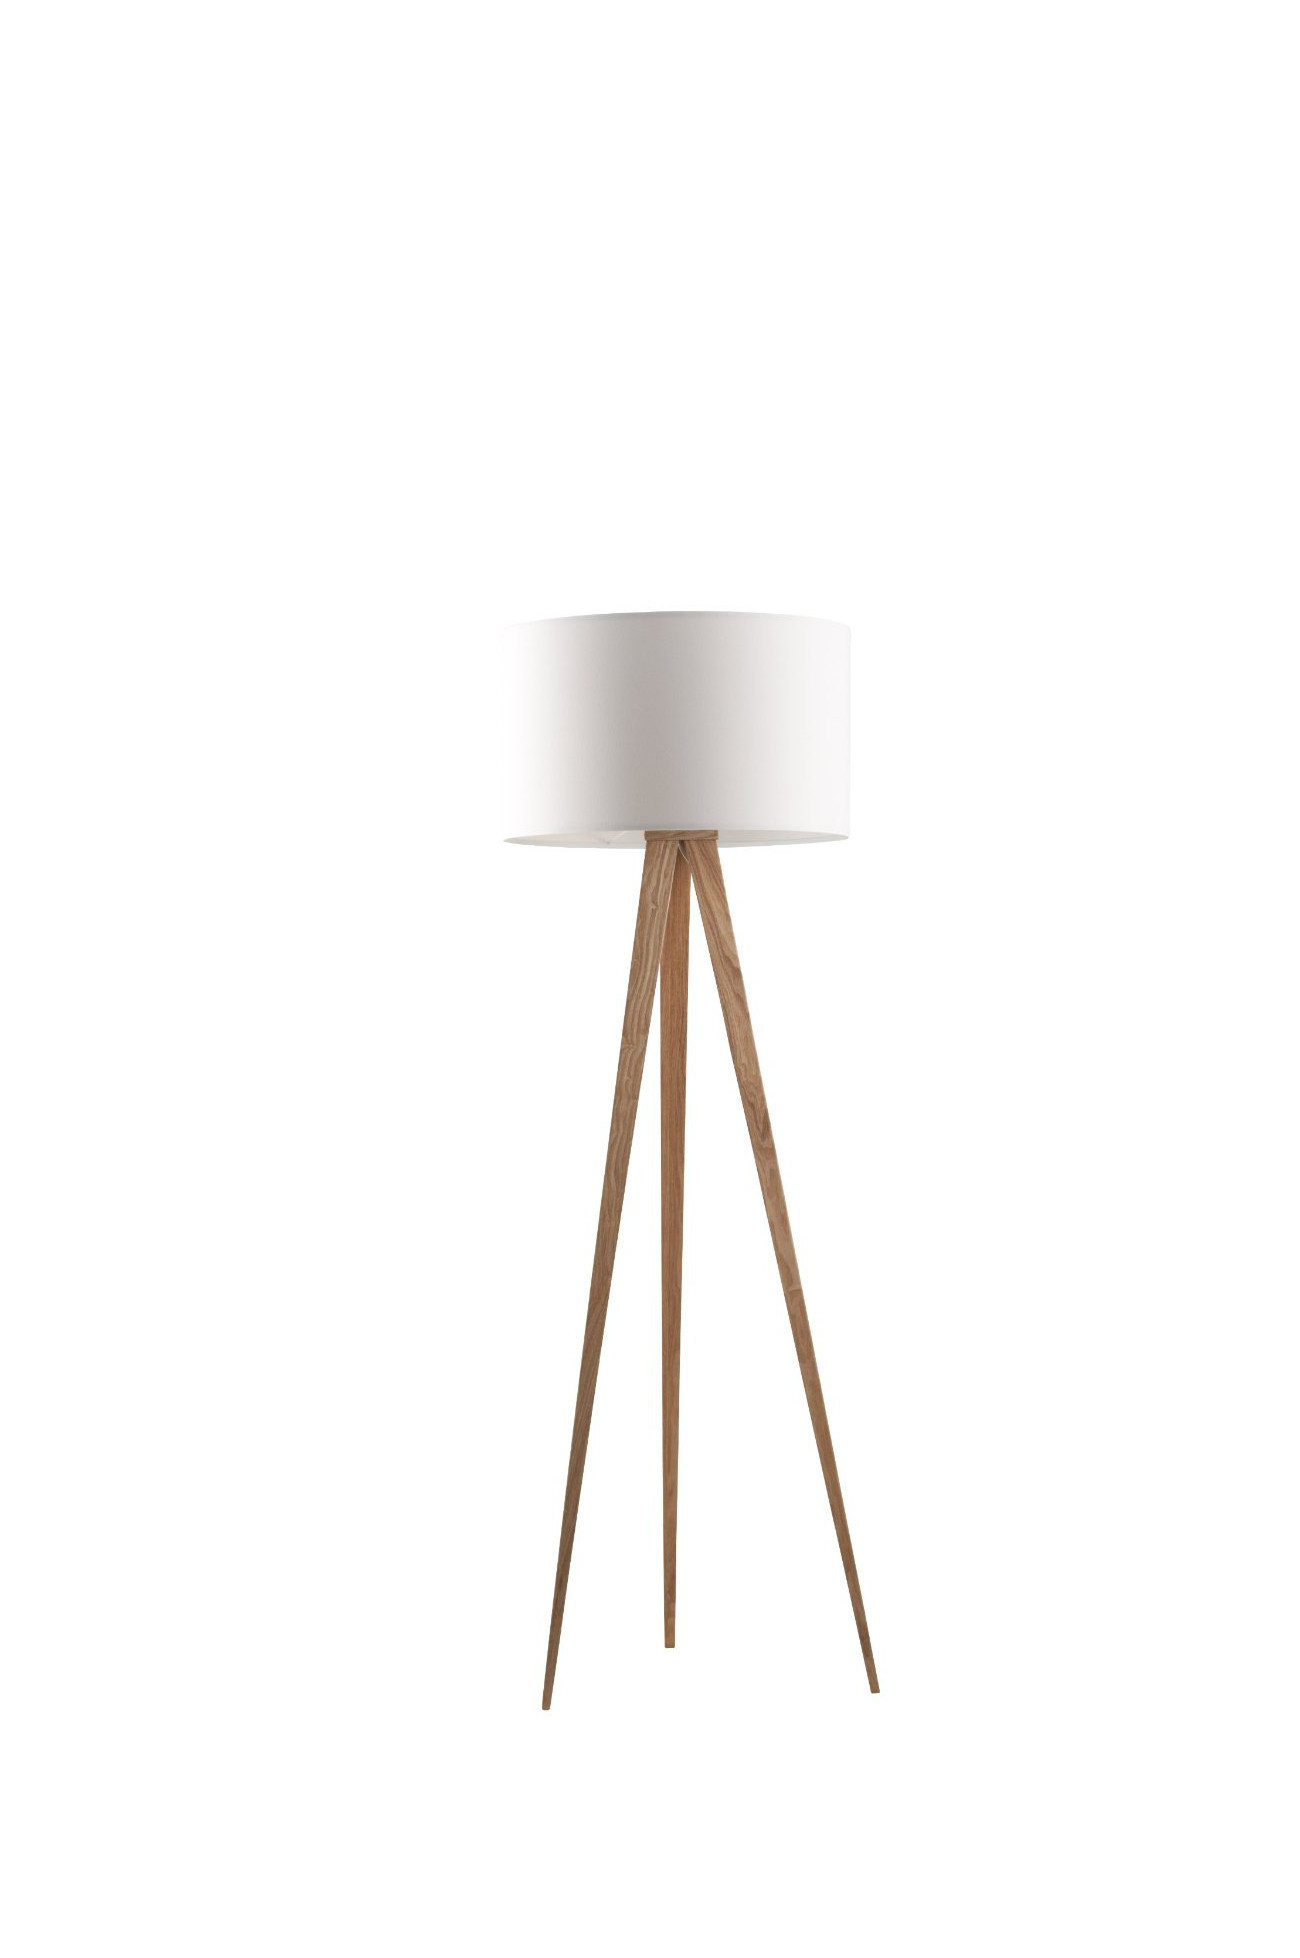 stehlampe zuiver tripod holz in wei mid century moebel. Black Bedroom Furniture Sets. Home Design Ideas